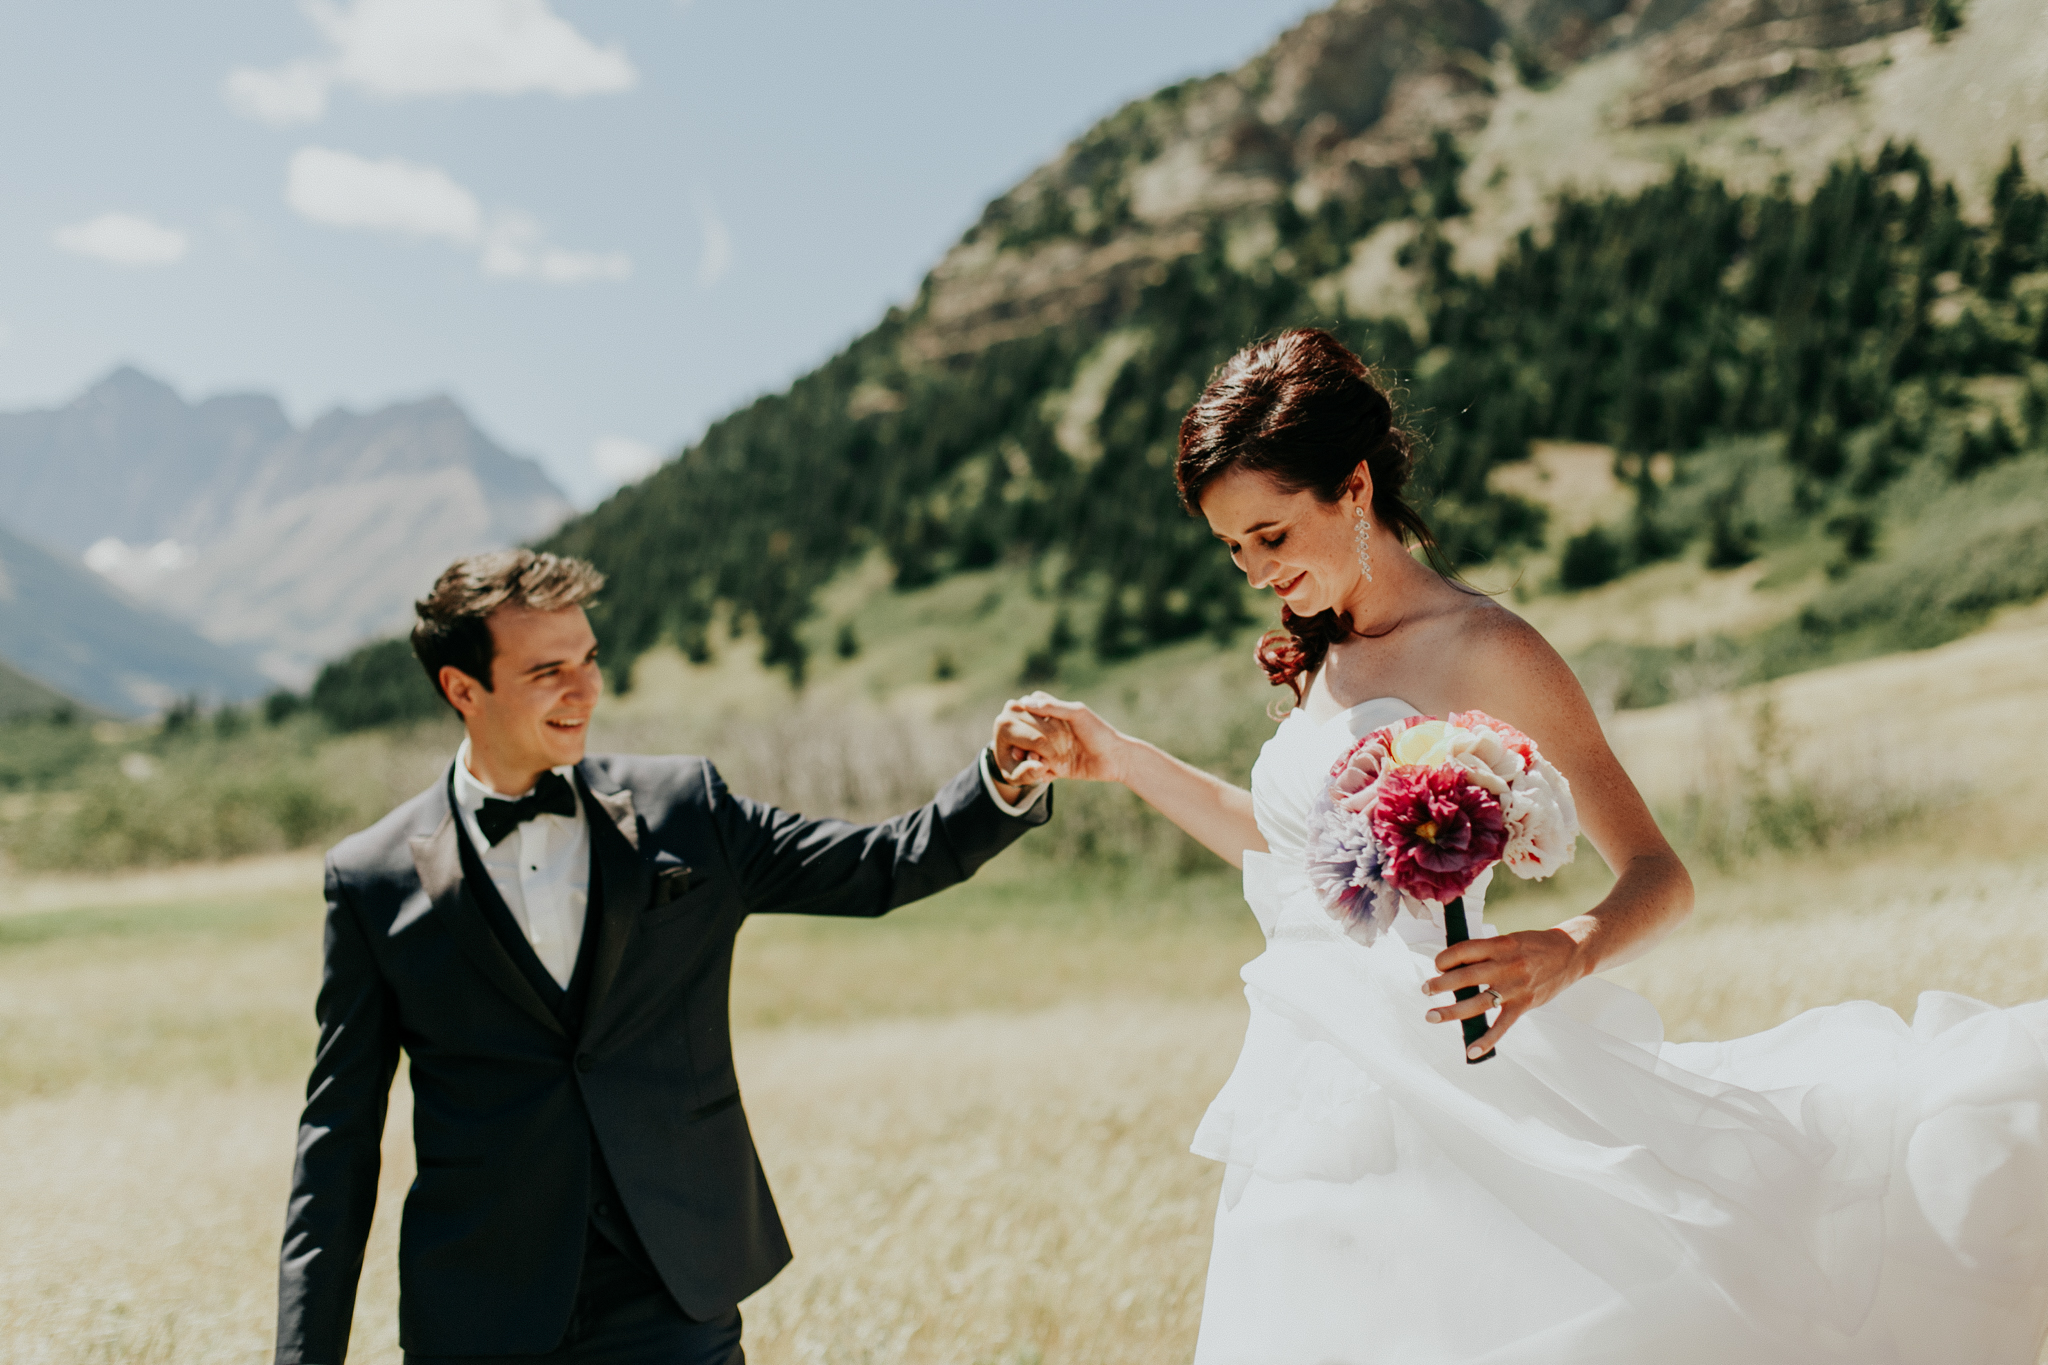 waterton-wedding-photographer-love-and-be-loved-photography-lethbridge-calgary-adam-jodie-image-picture-photo-64.jpg